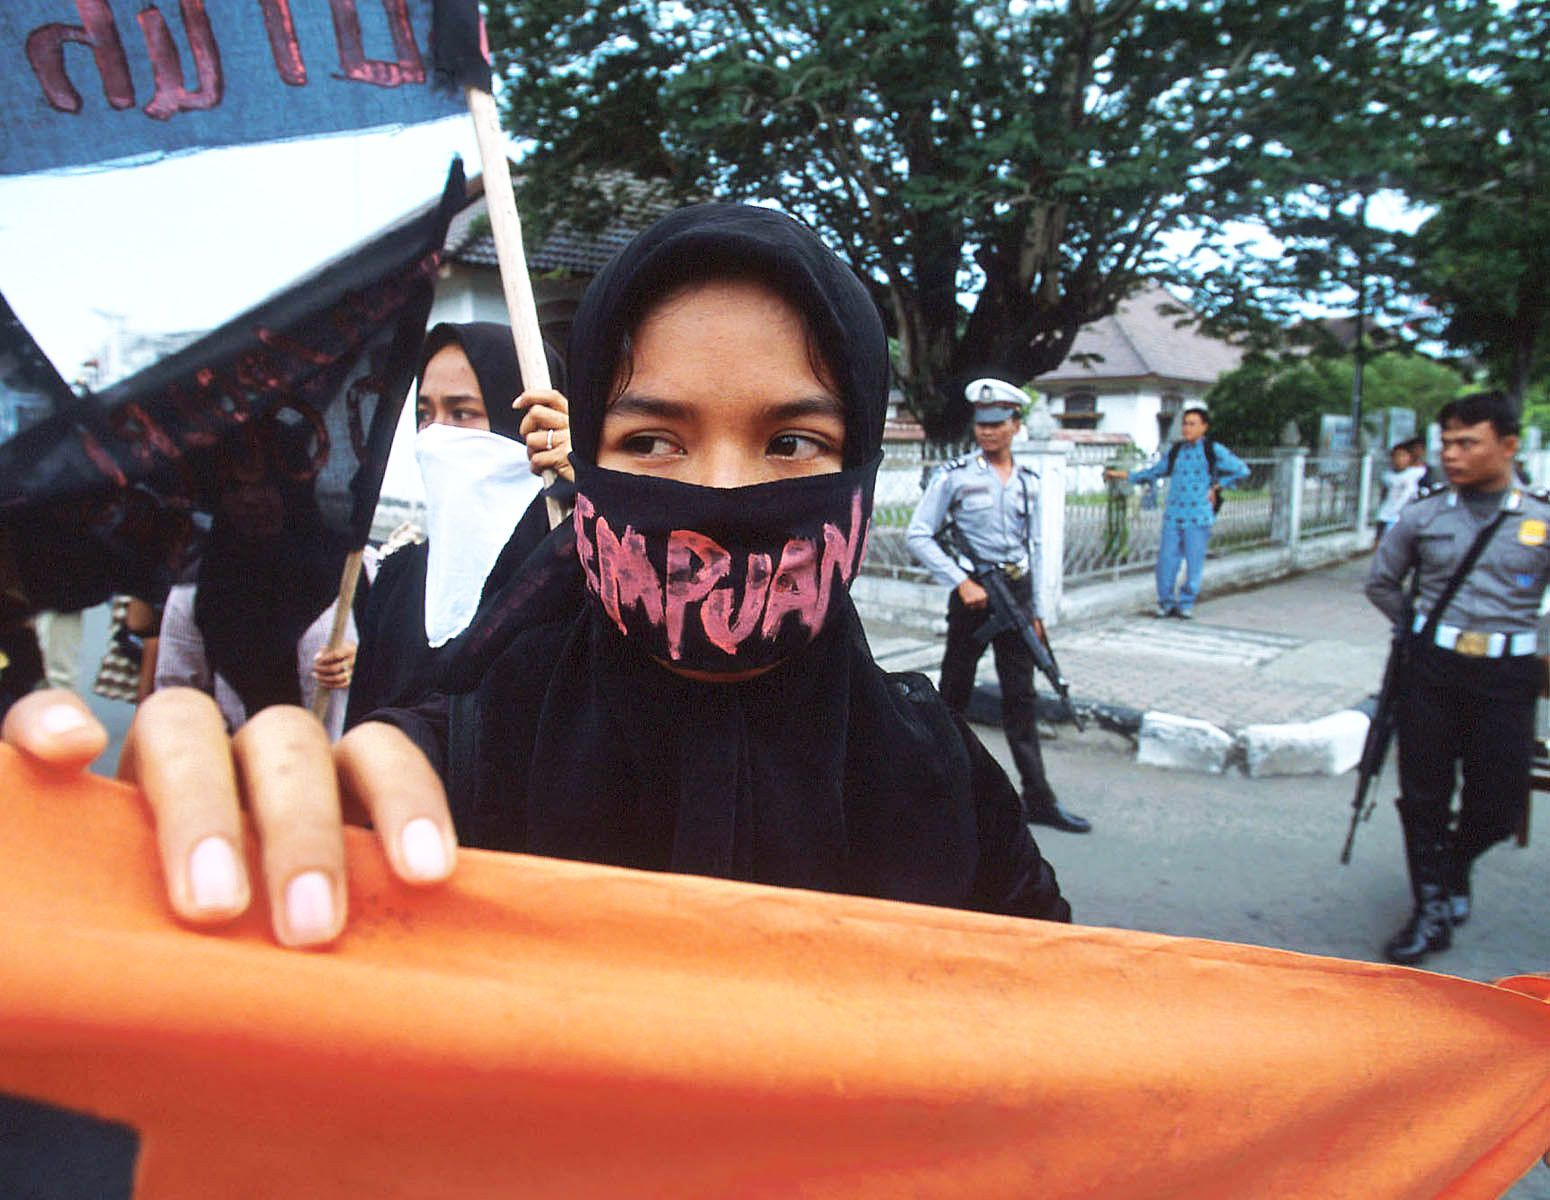 Women activists demonstrate in central Banda Aceh.They calling for more freedom and more rights.The Indonesian military broke up this peaceful demonstration. The women were beaten. Some escaped and some were arrested.Banda Aceh, September 2001